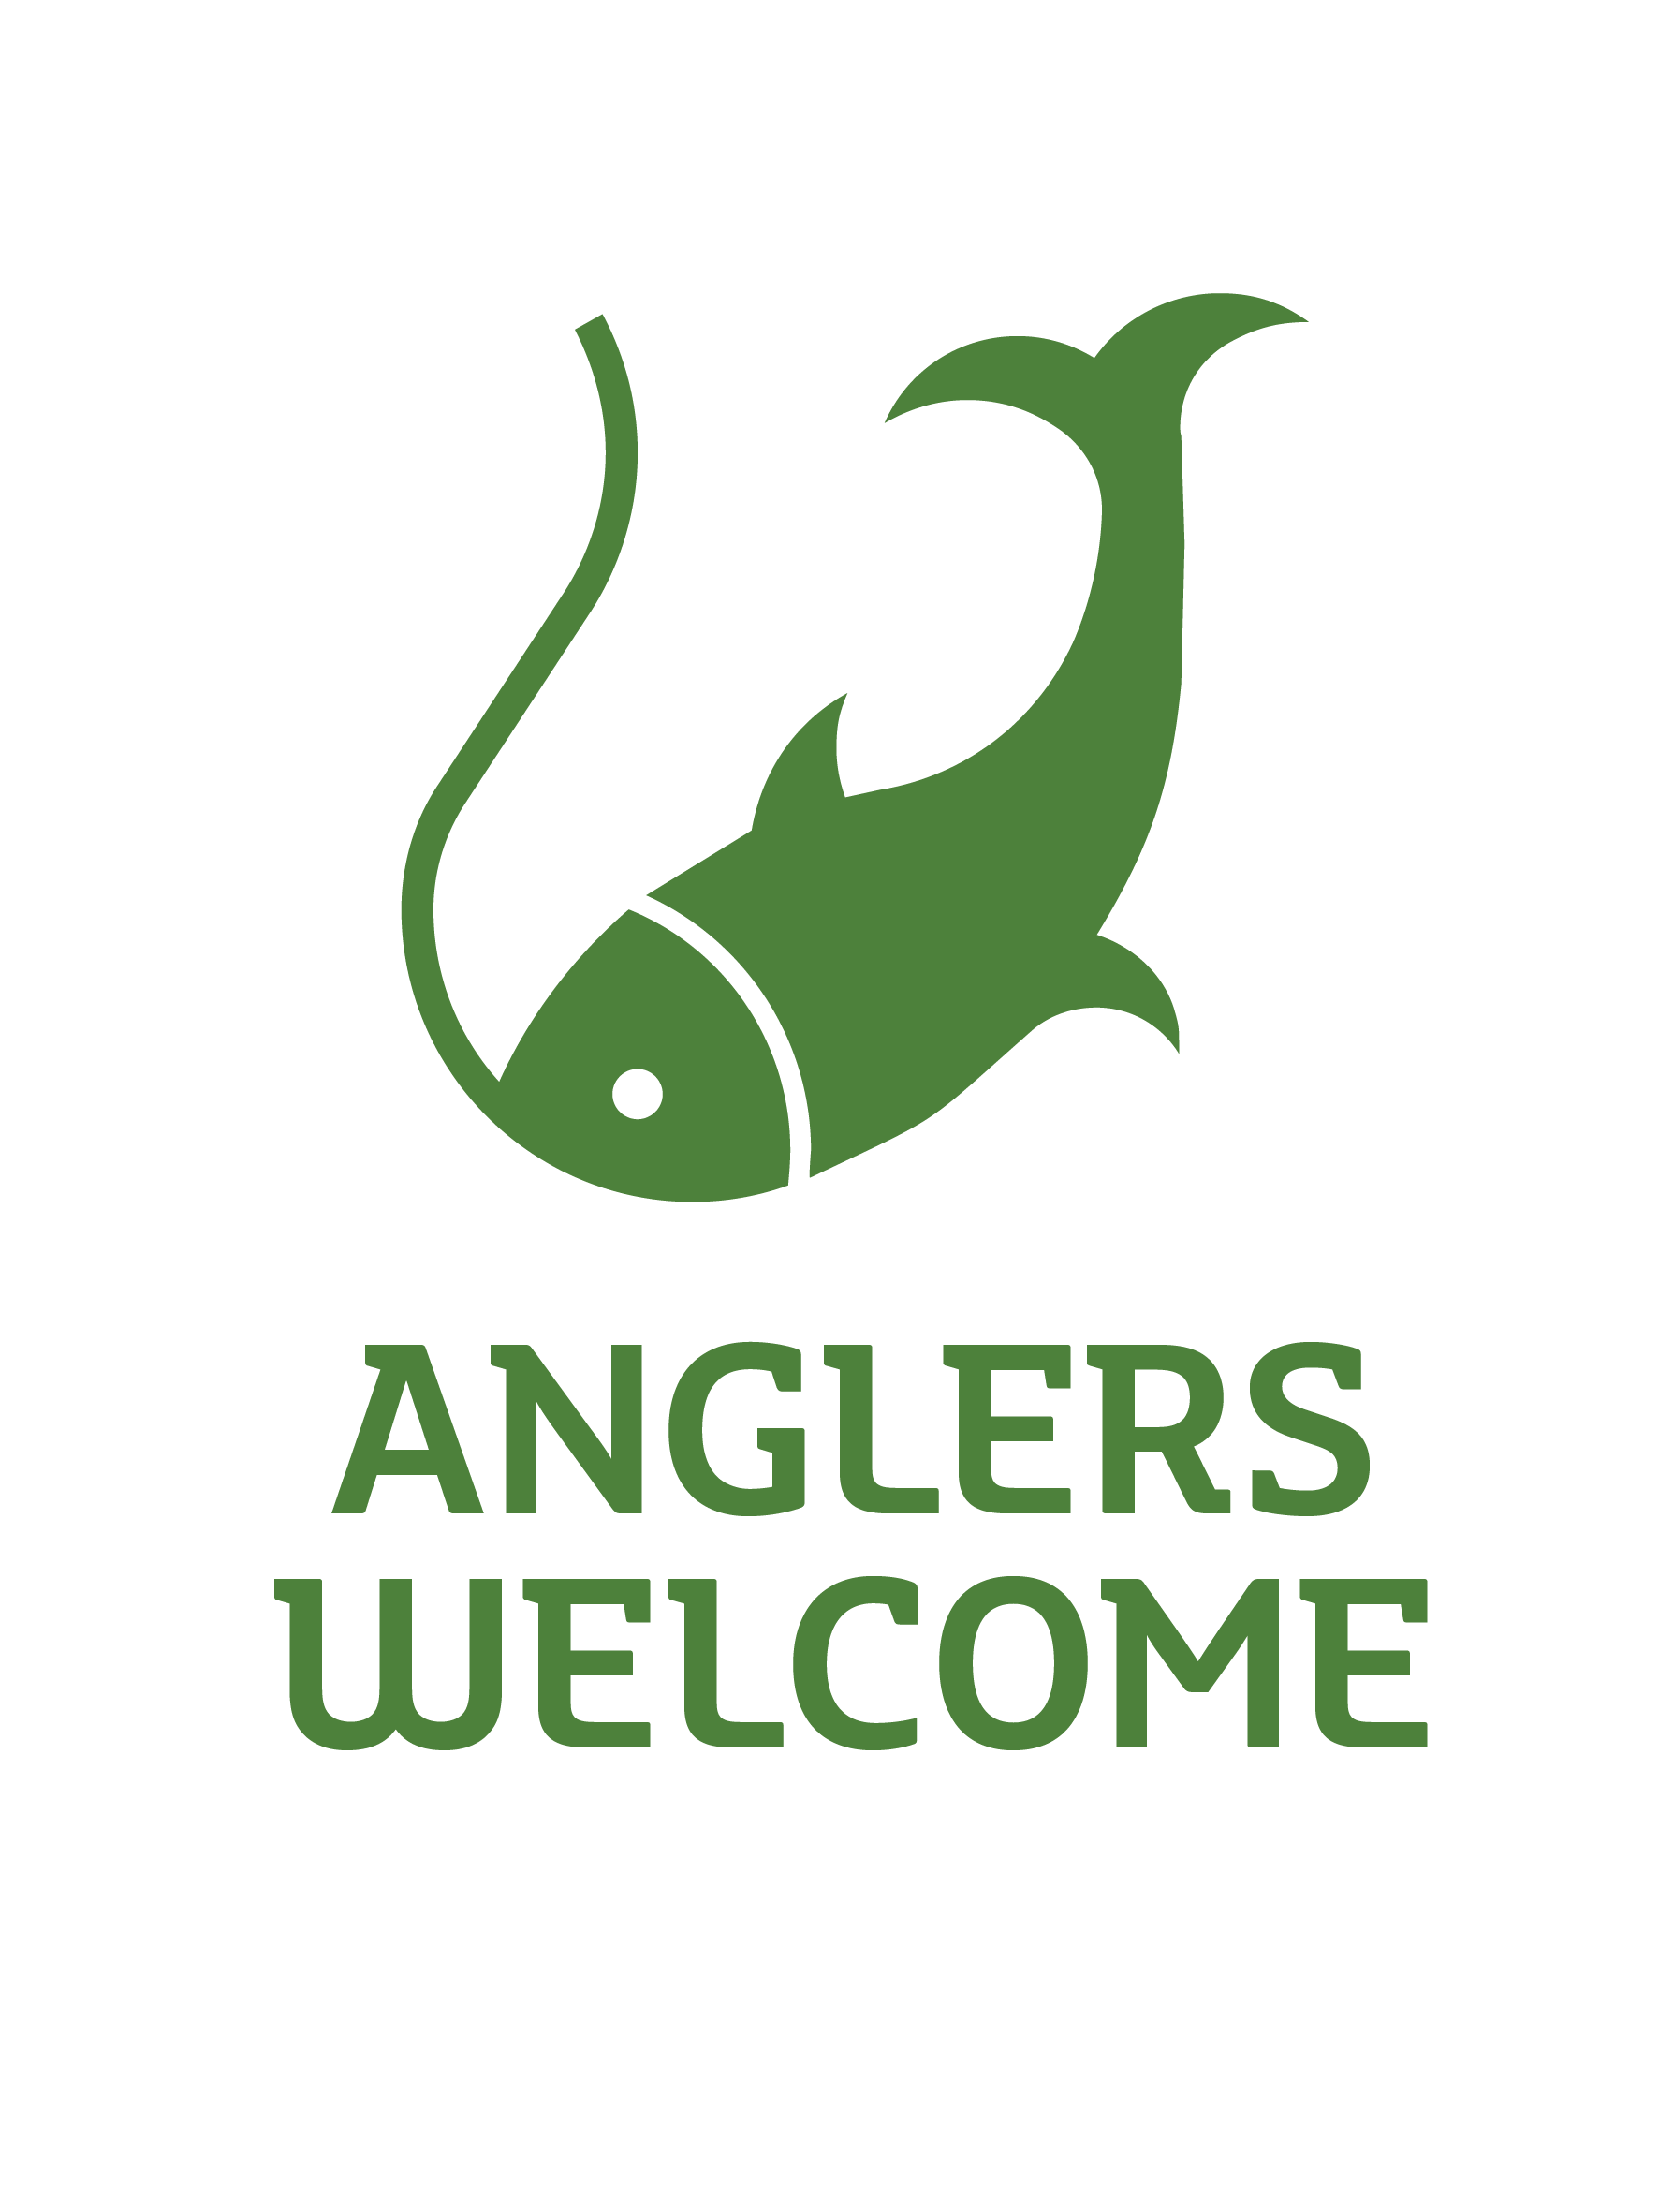 Anglers_Welcome